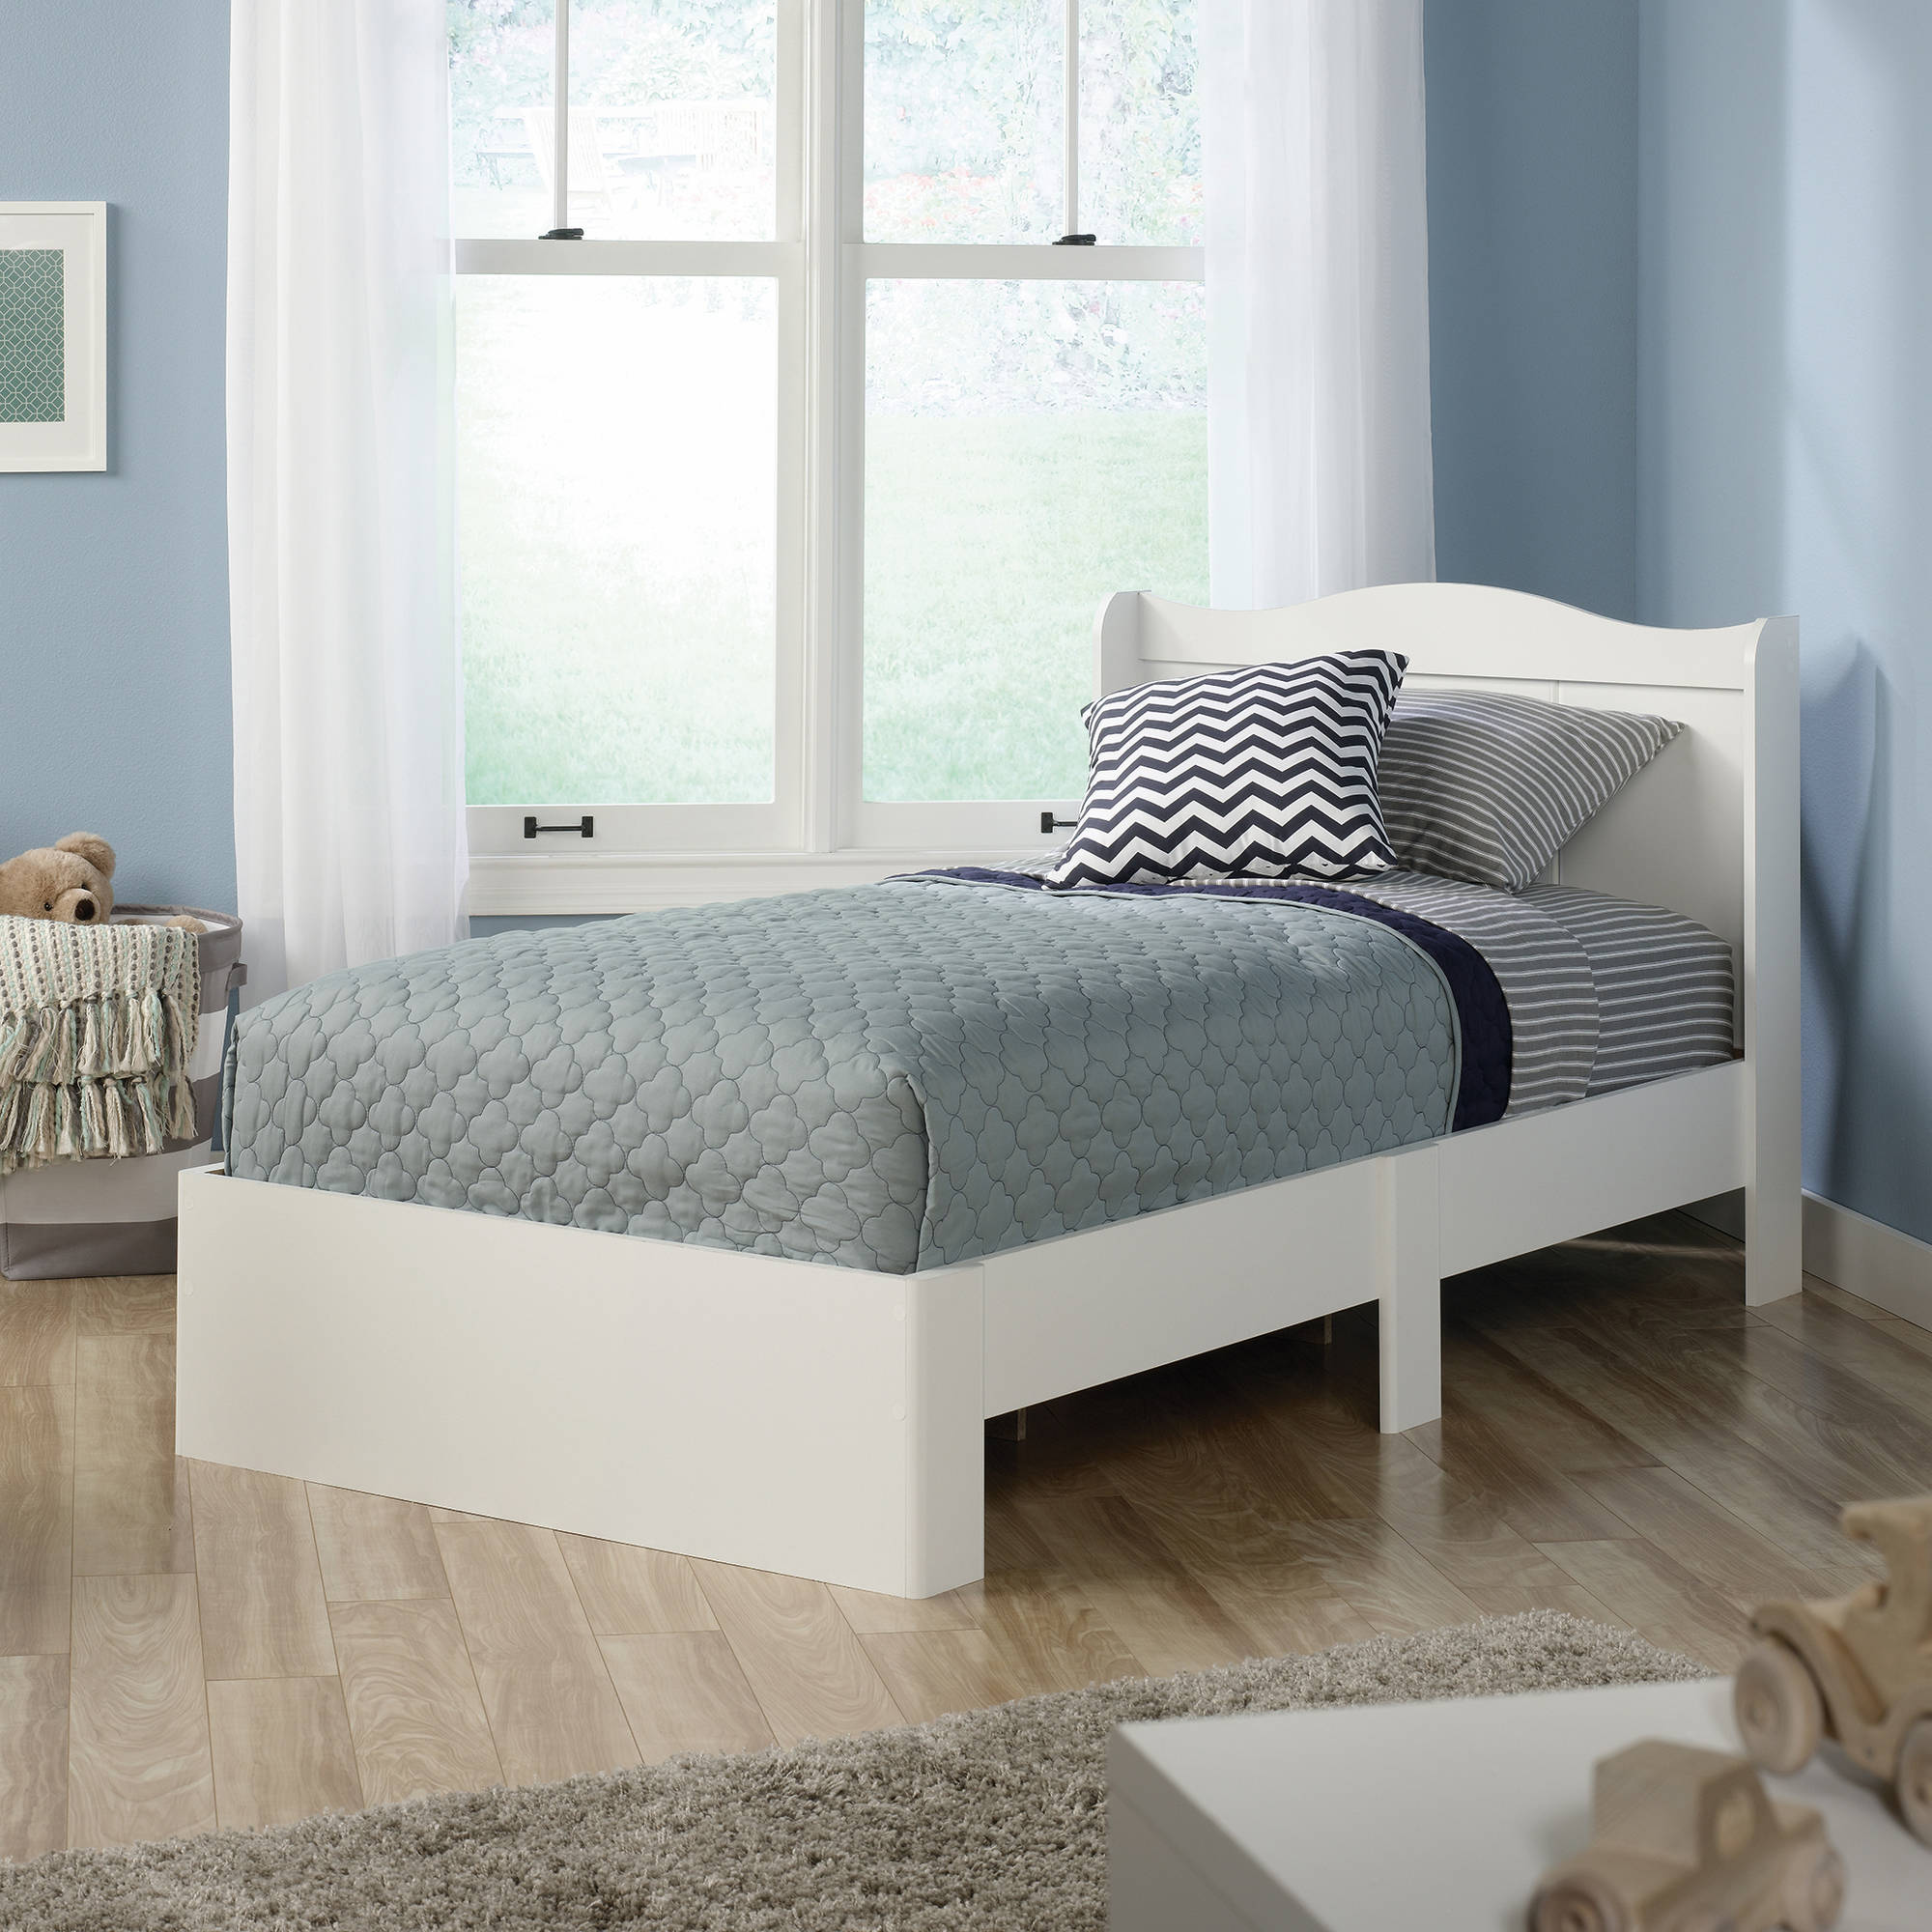 sauder storybook twin mates bed, soft white  walmart, Headboard designs